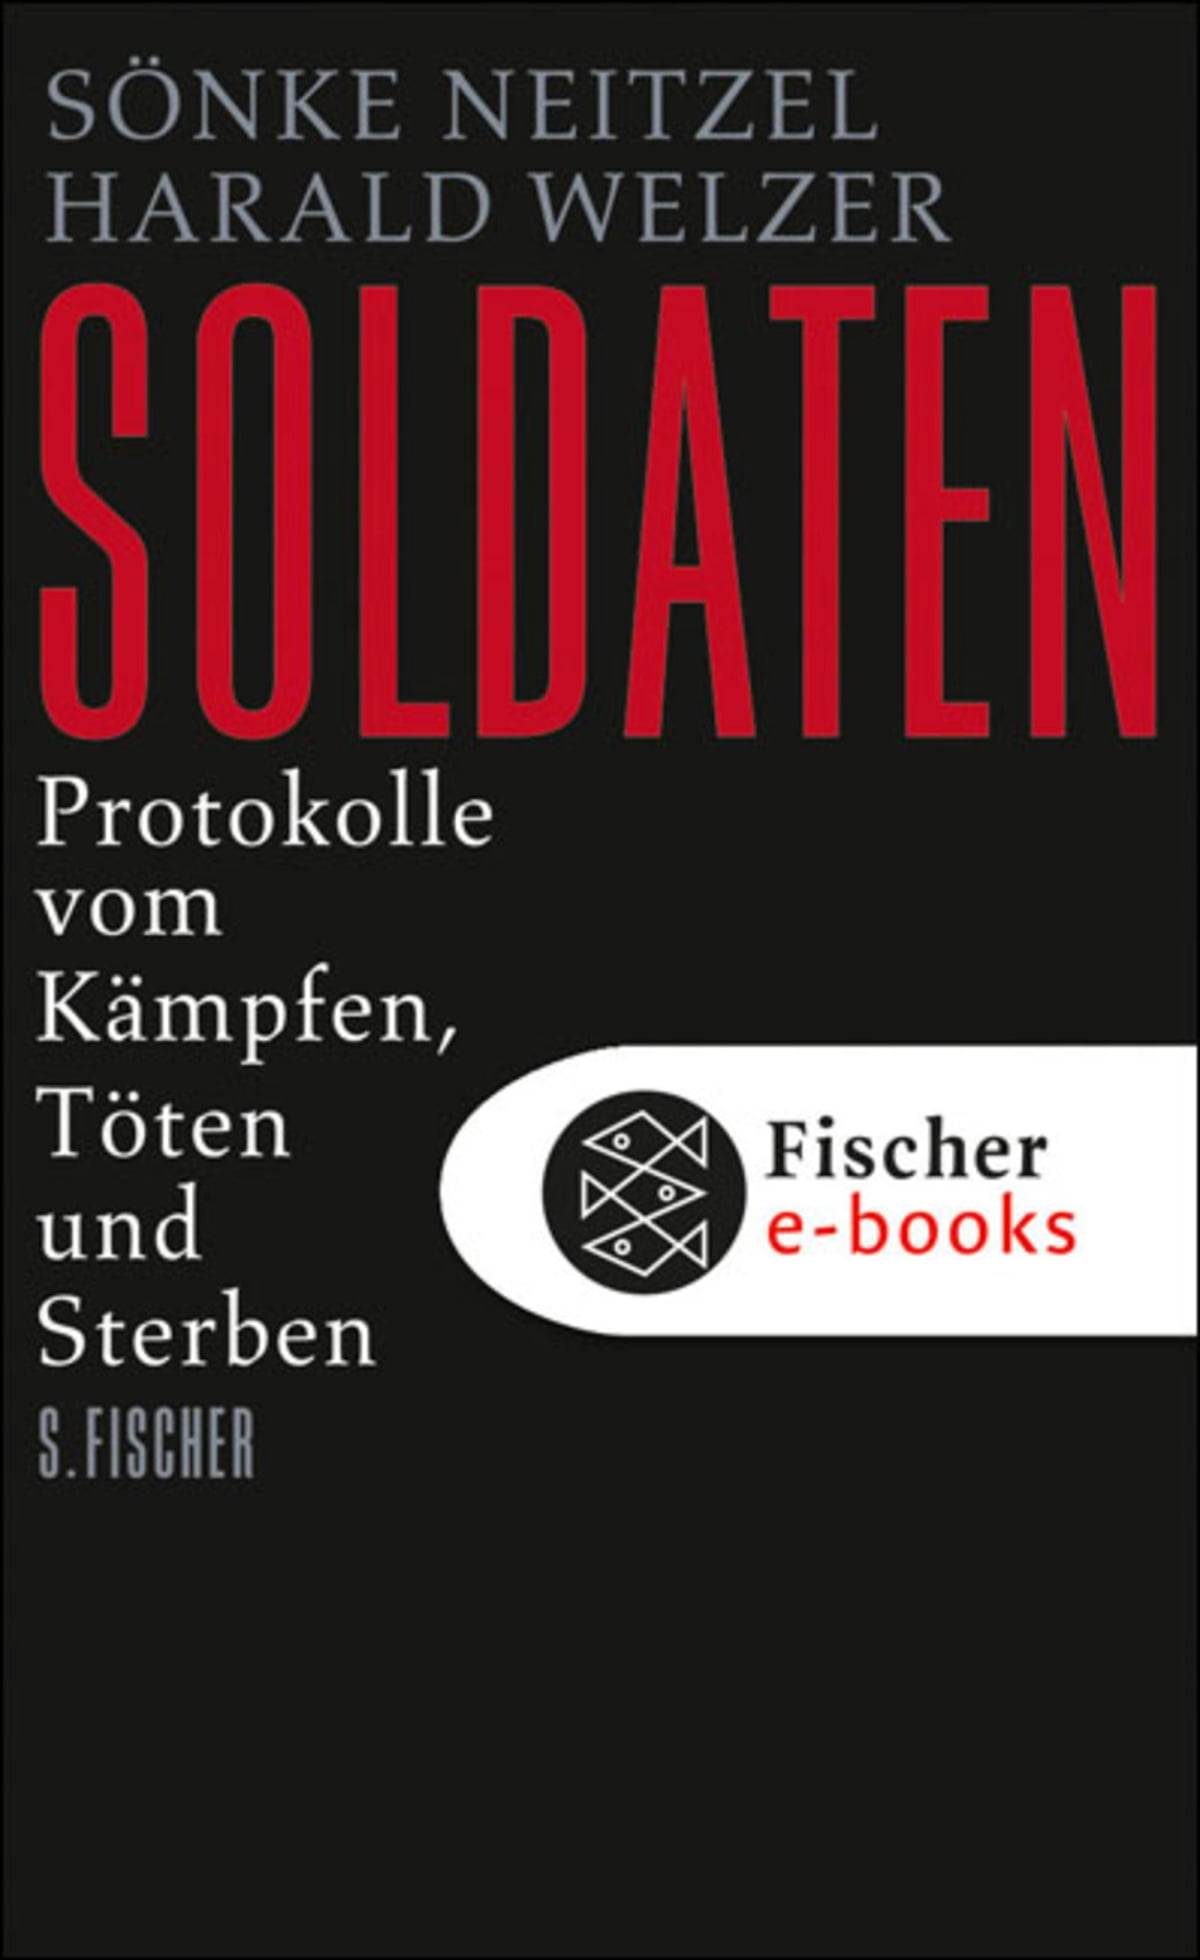 Soldaten eBook by Sönke Neitzel - 9783104007922 | Rakuten Kobo